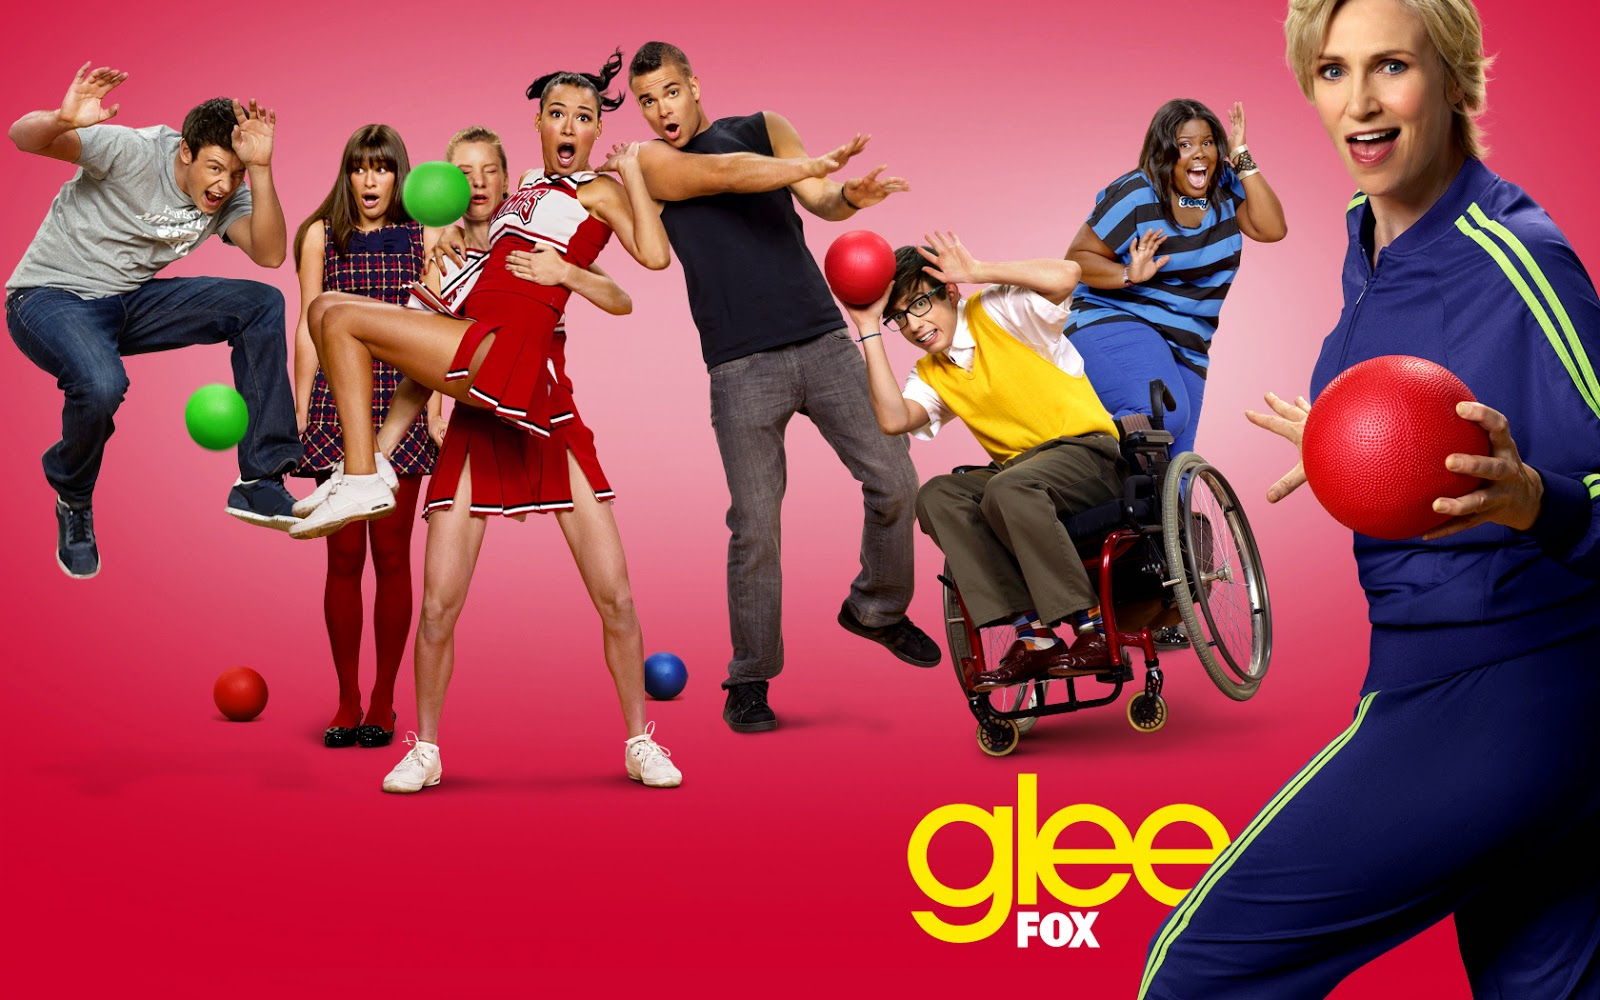 Assista video promocional do 18º episodio de 'Glee""